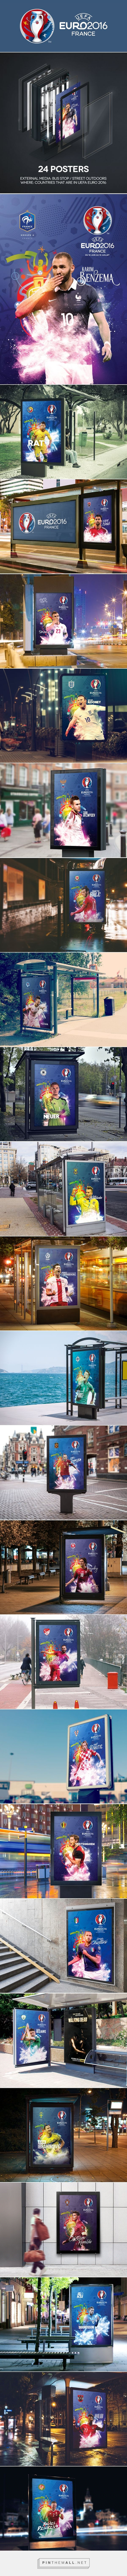 UEFA Euro 2016 Posters on Behance - created on 2016-02-07 23:08:08